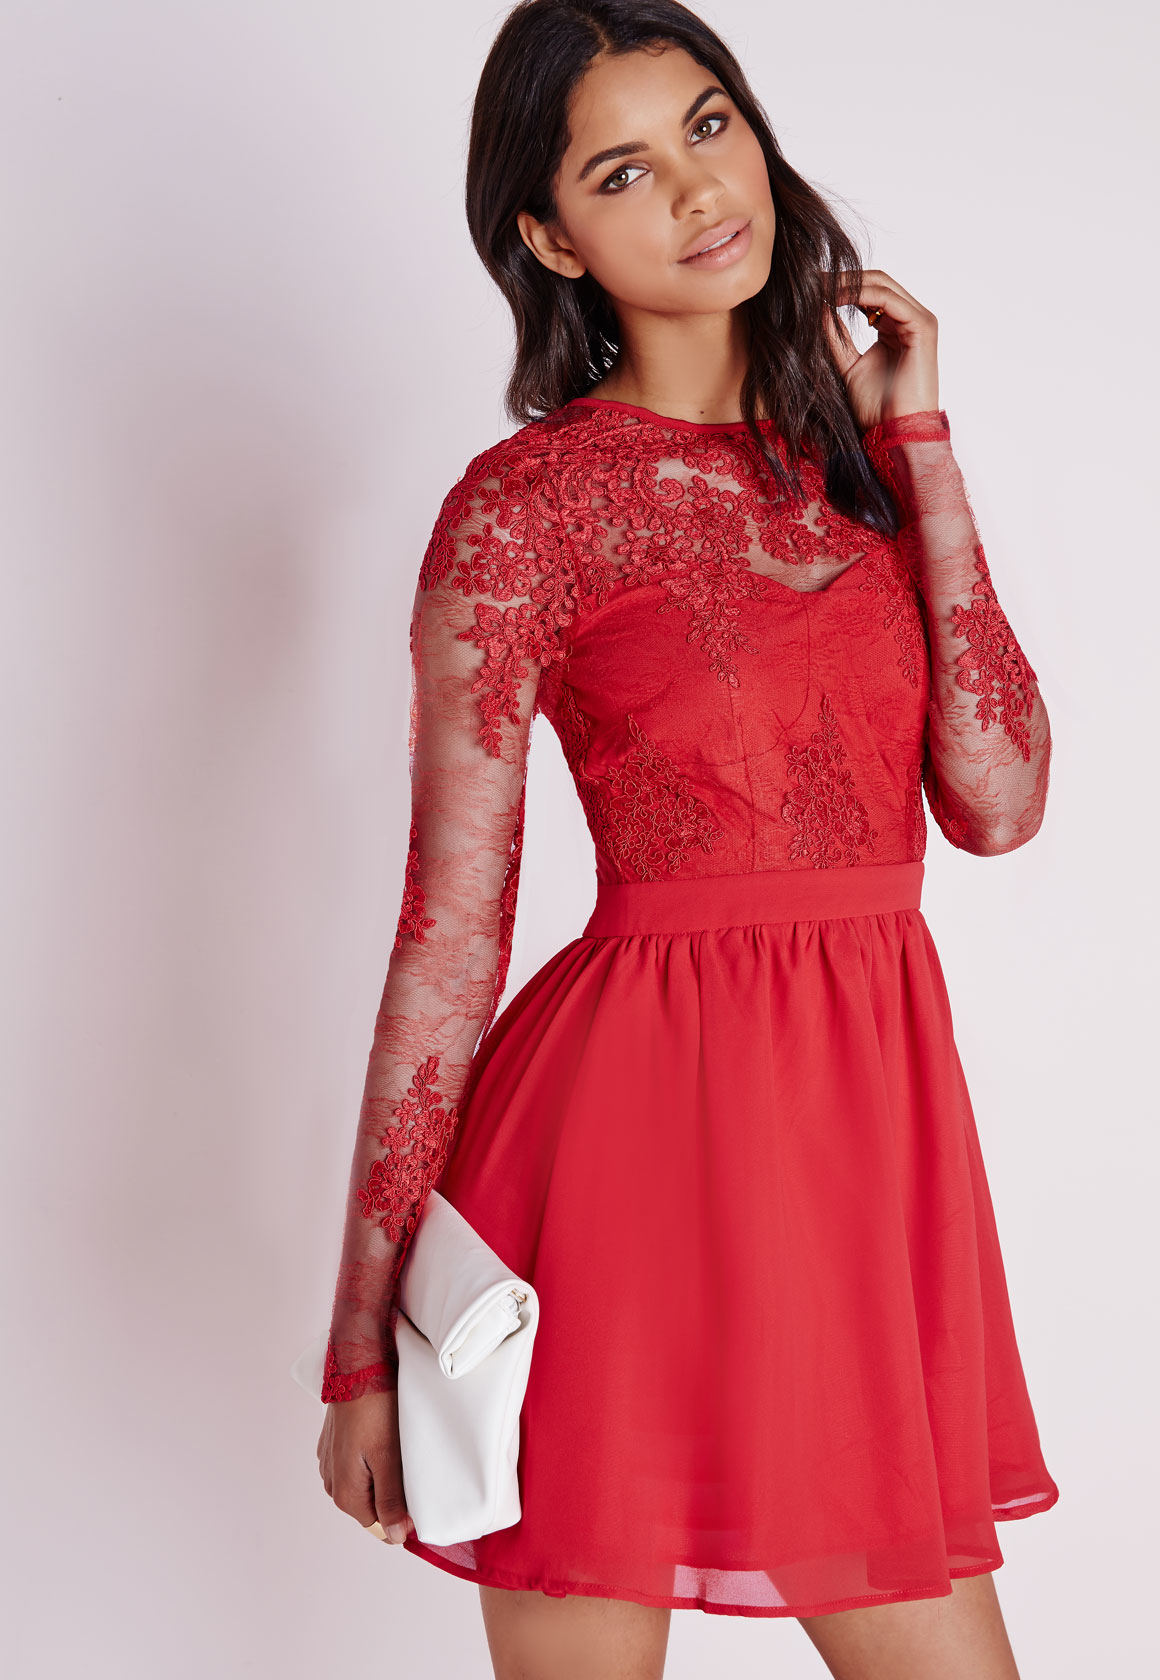 Missguided Premium Lace Long Sleeve Skater Dress Red in Red - Lyst 47e3d88e0